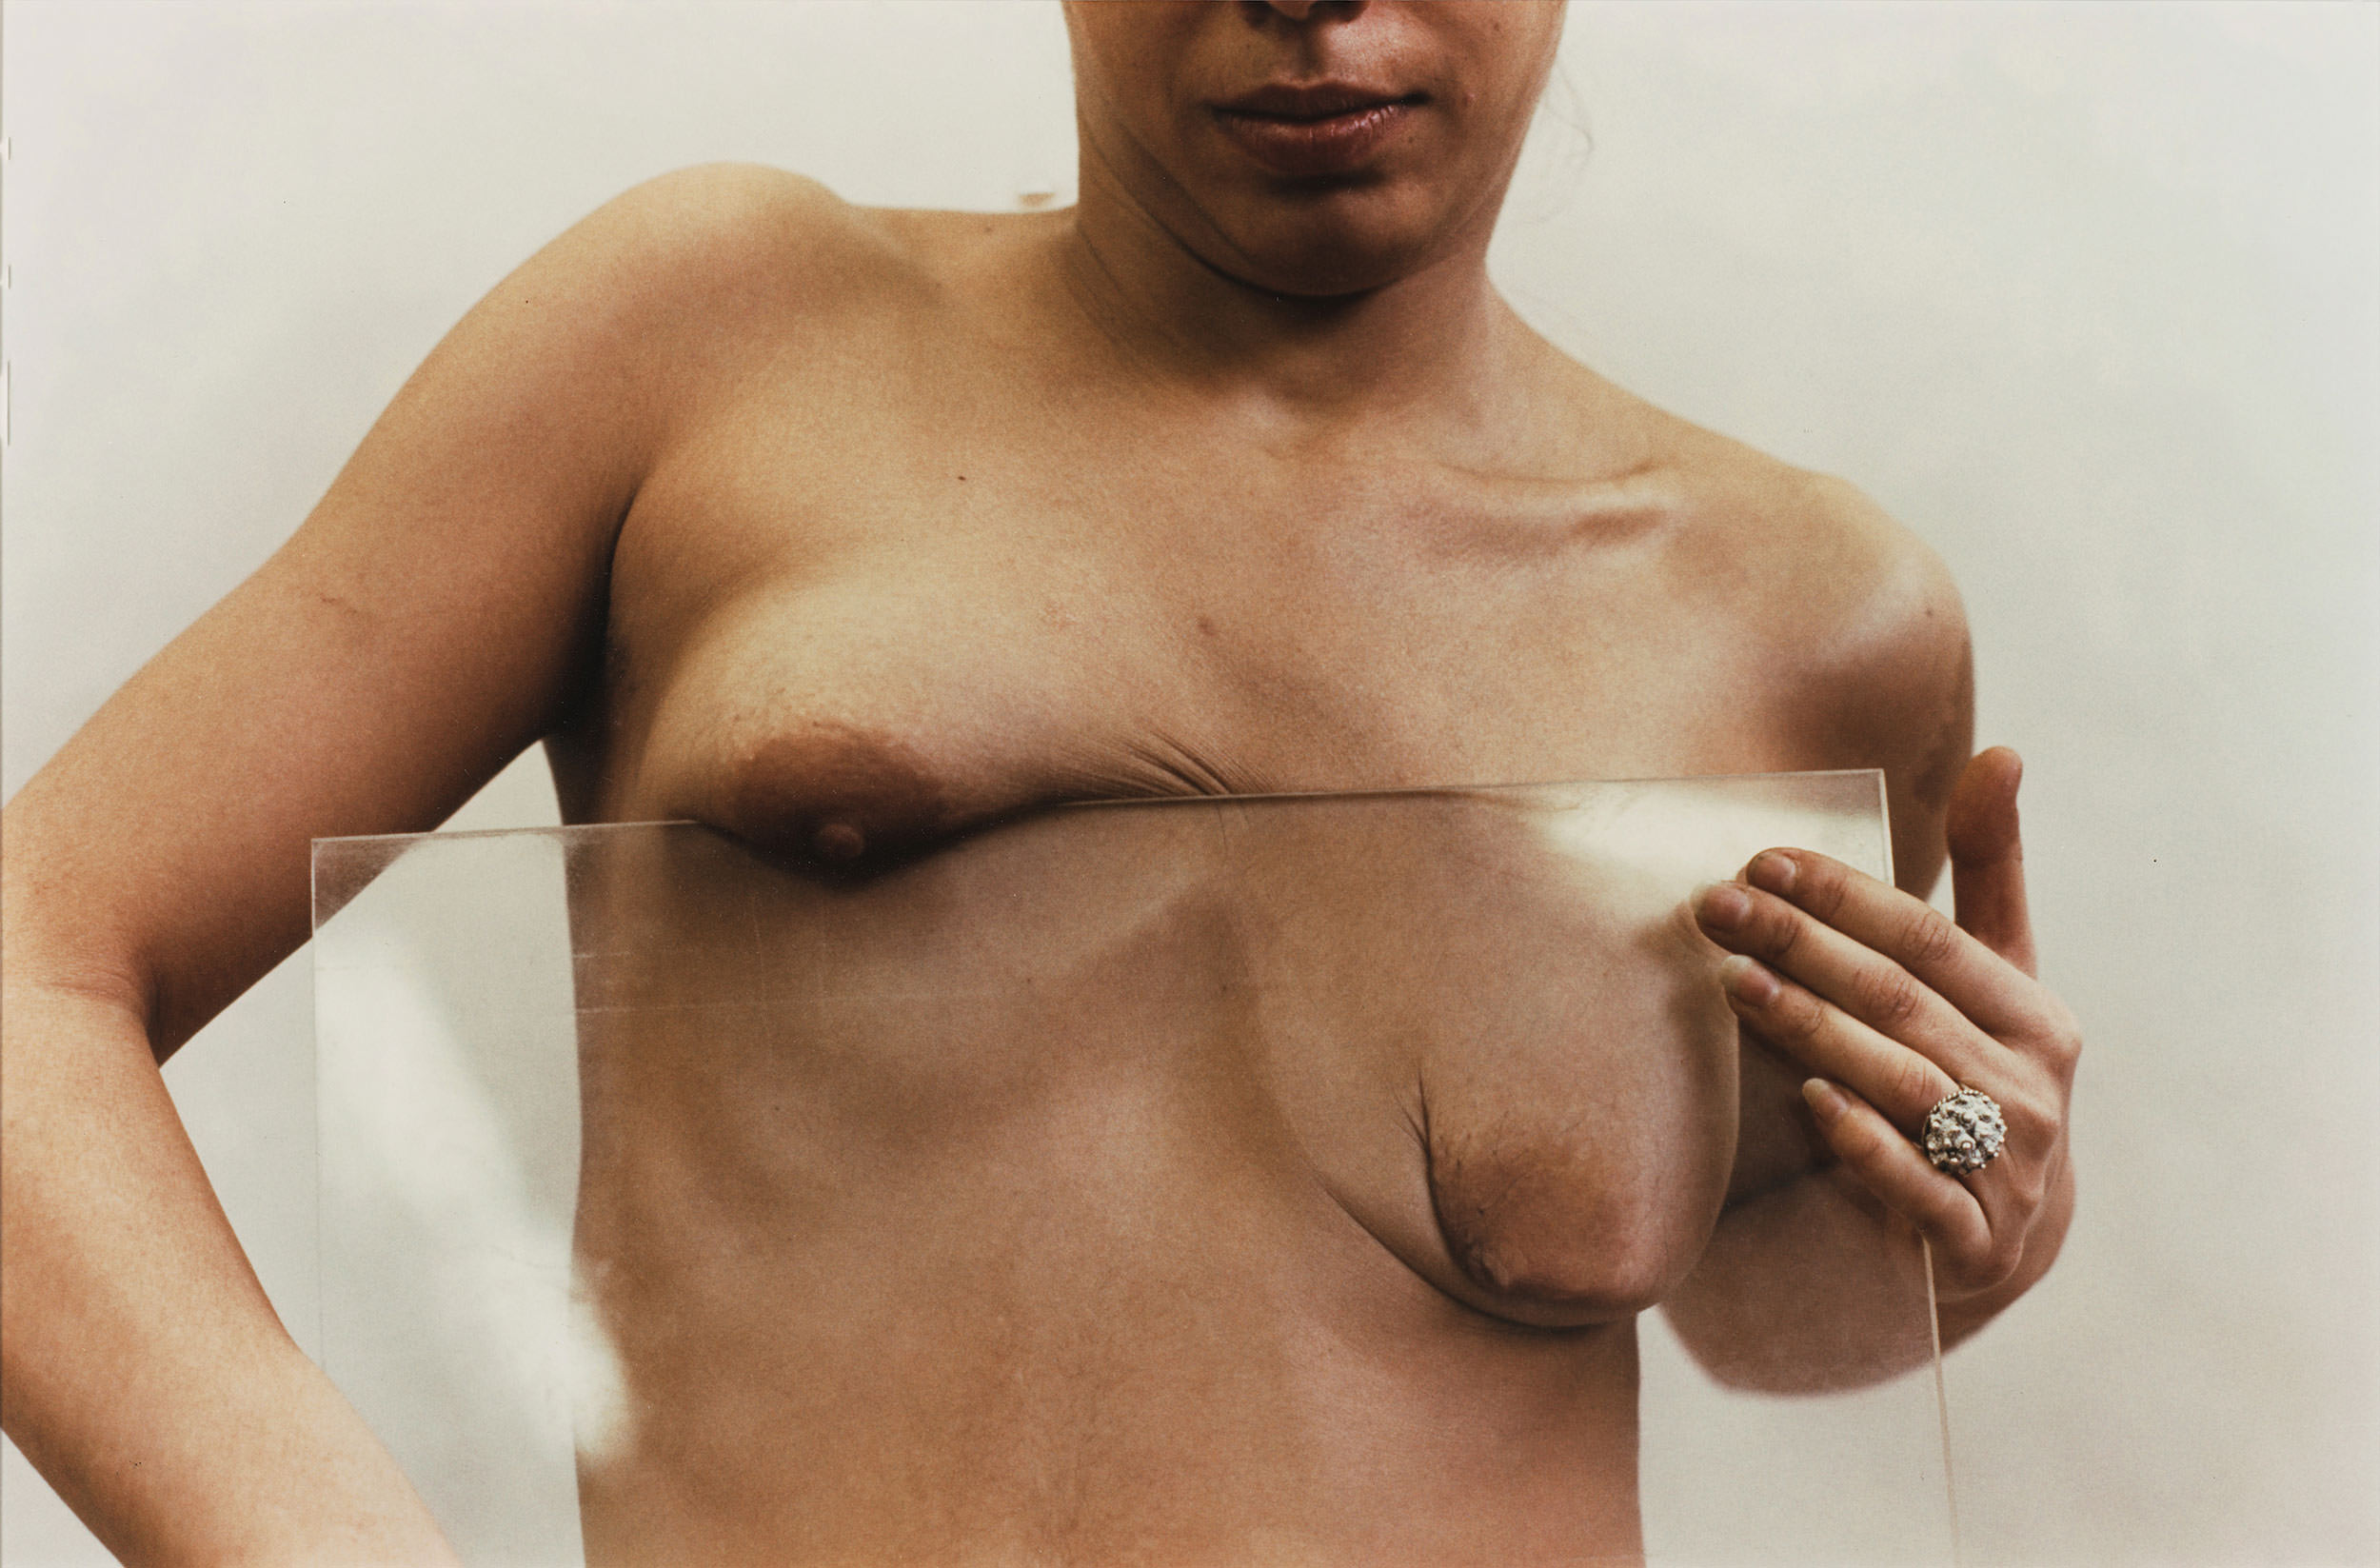 Ana Mendieta, Untitled (Glass on Body), 1972.